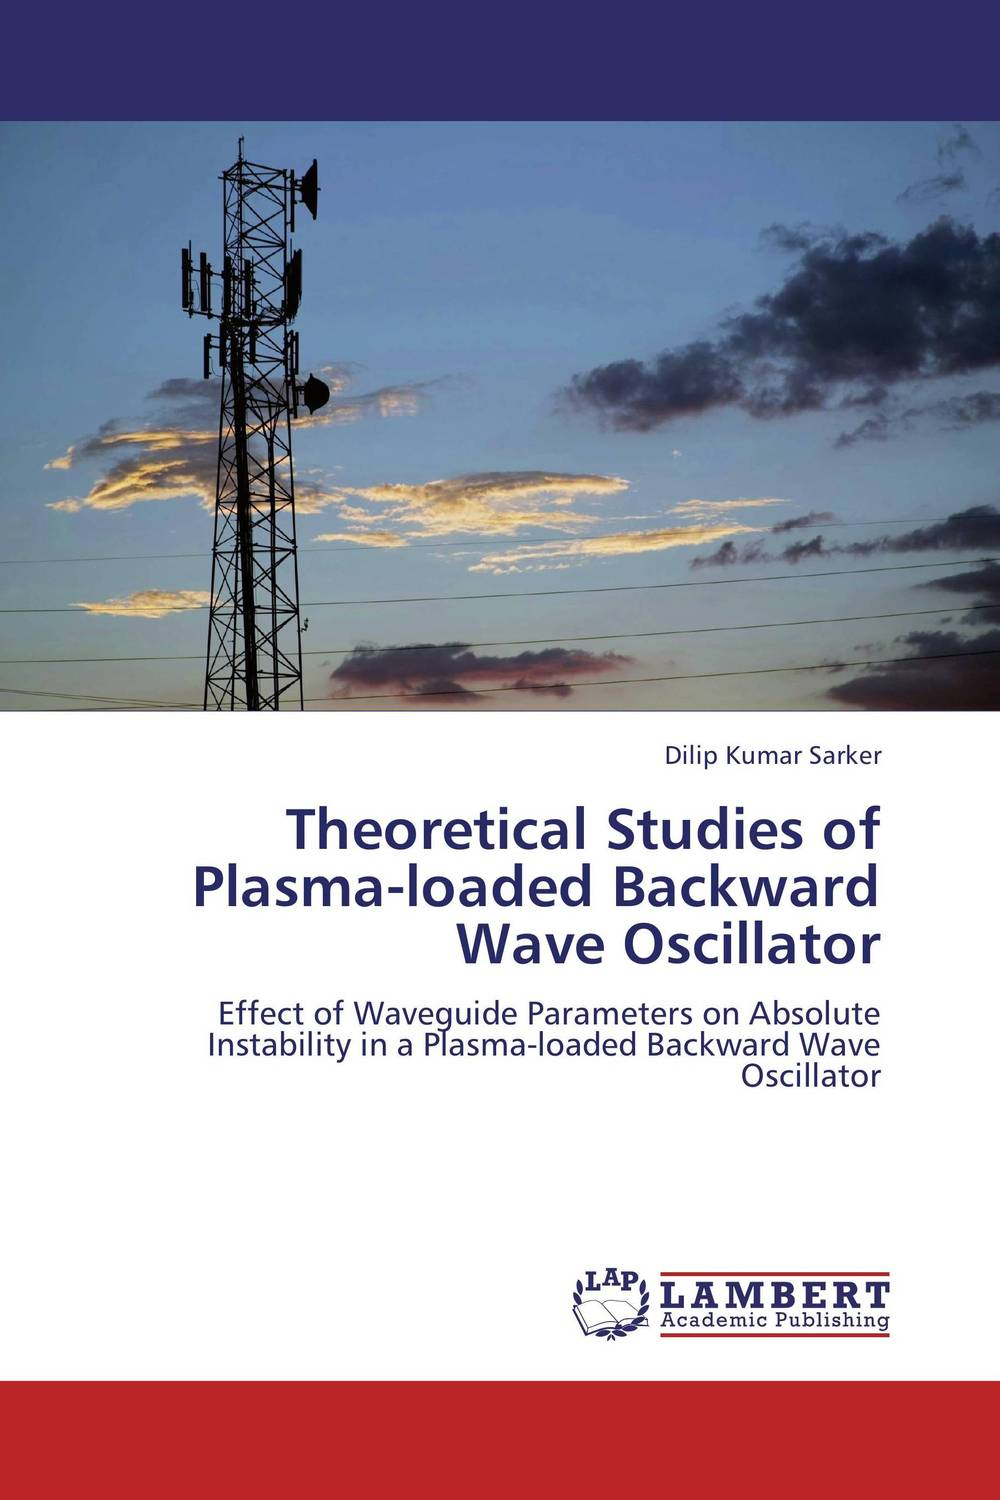 Theoretical Studies of Plasma-loaded Backward Wave Oscillator spiral structure in galaxies – a density wave theory